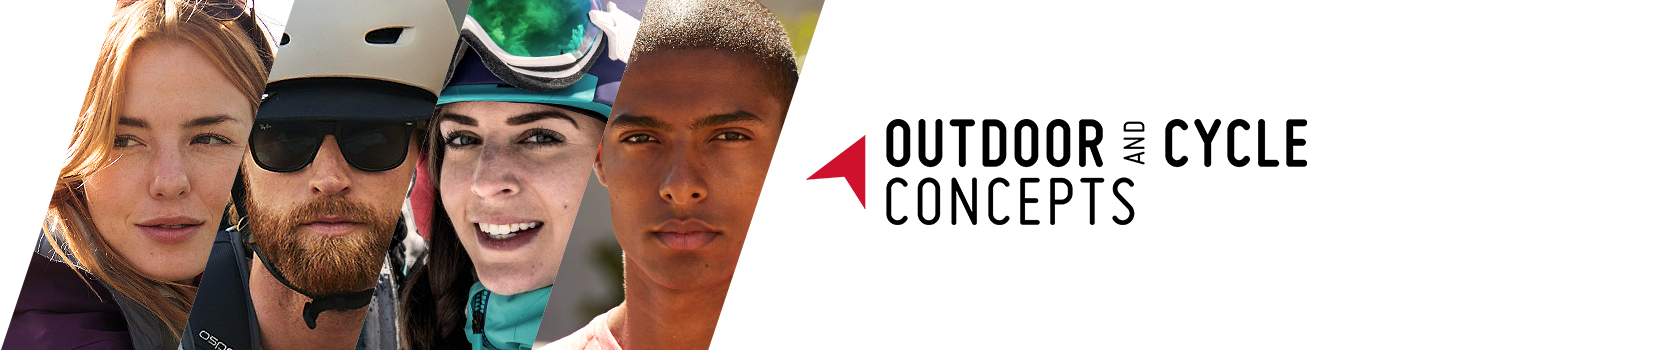 Outdoor and Cycle Concepts header